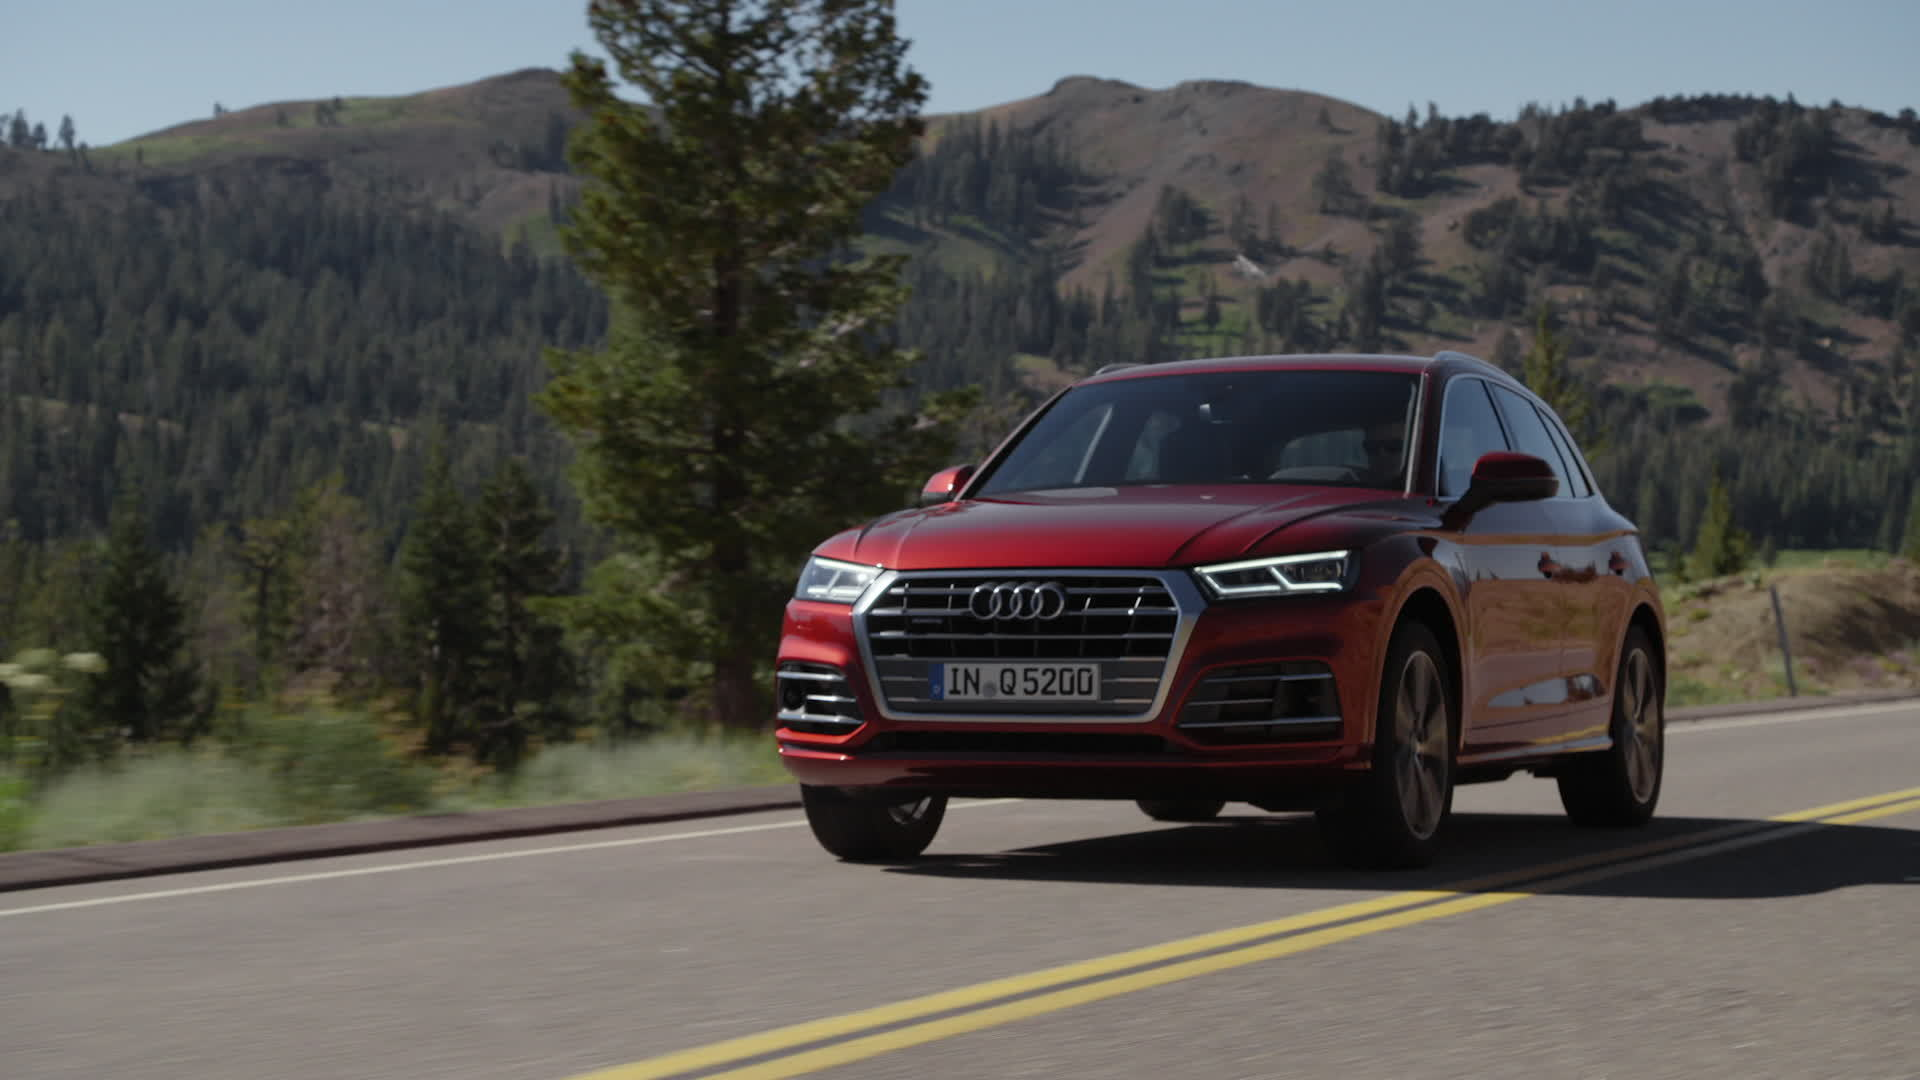 Even sportier and more multifaceted - The second generation of the Audi Q5